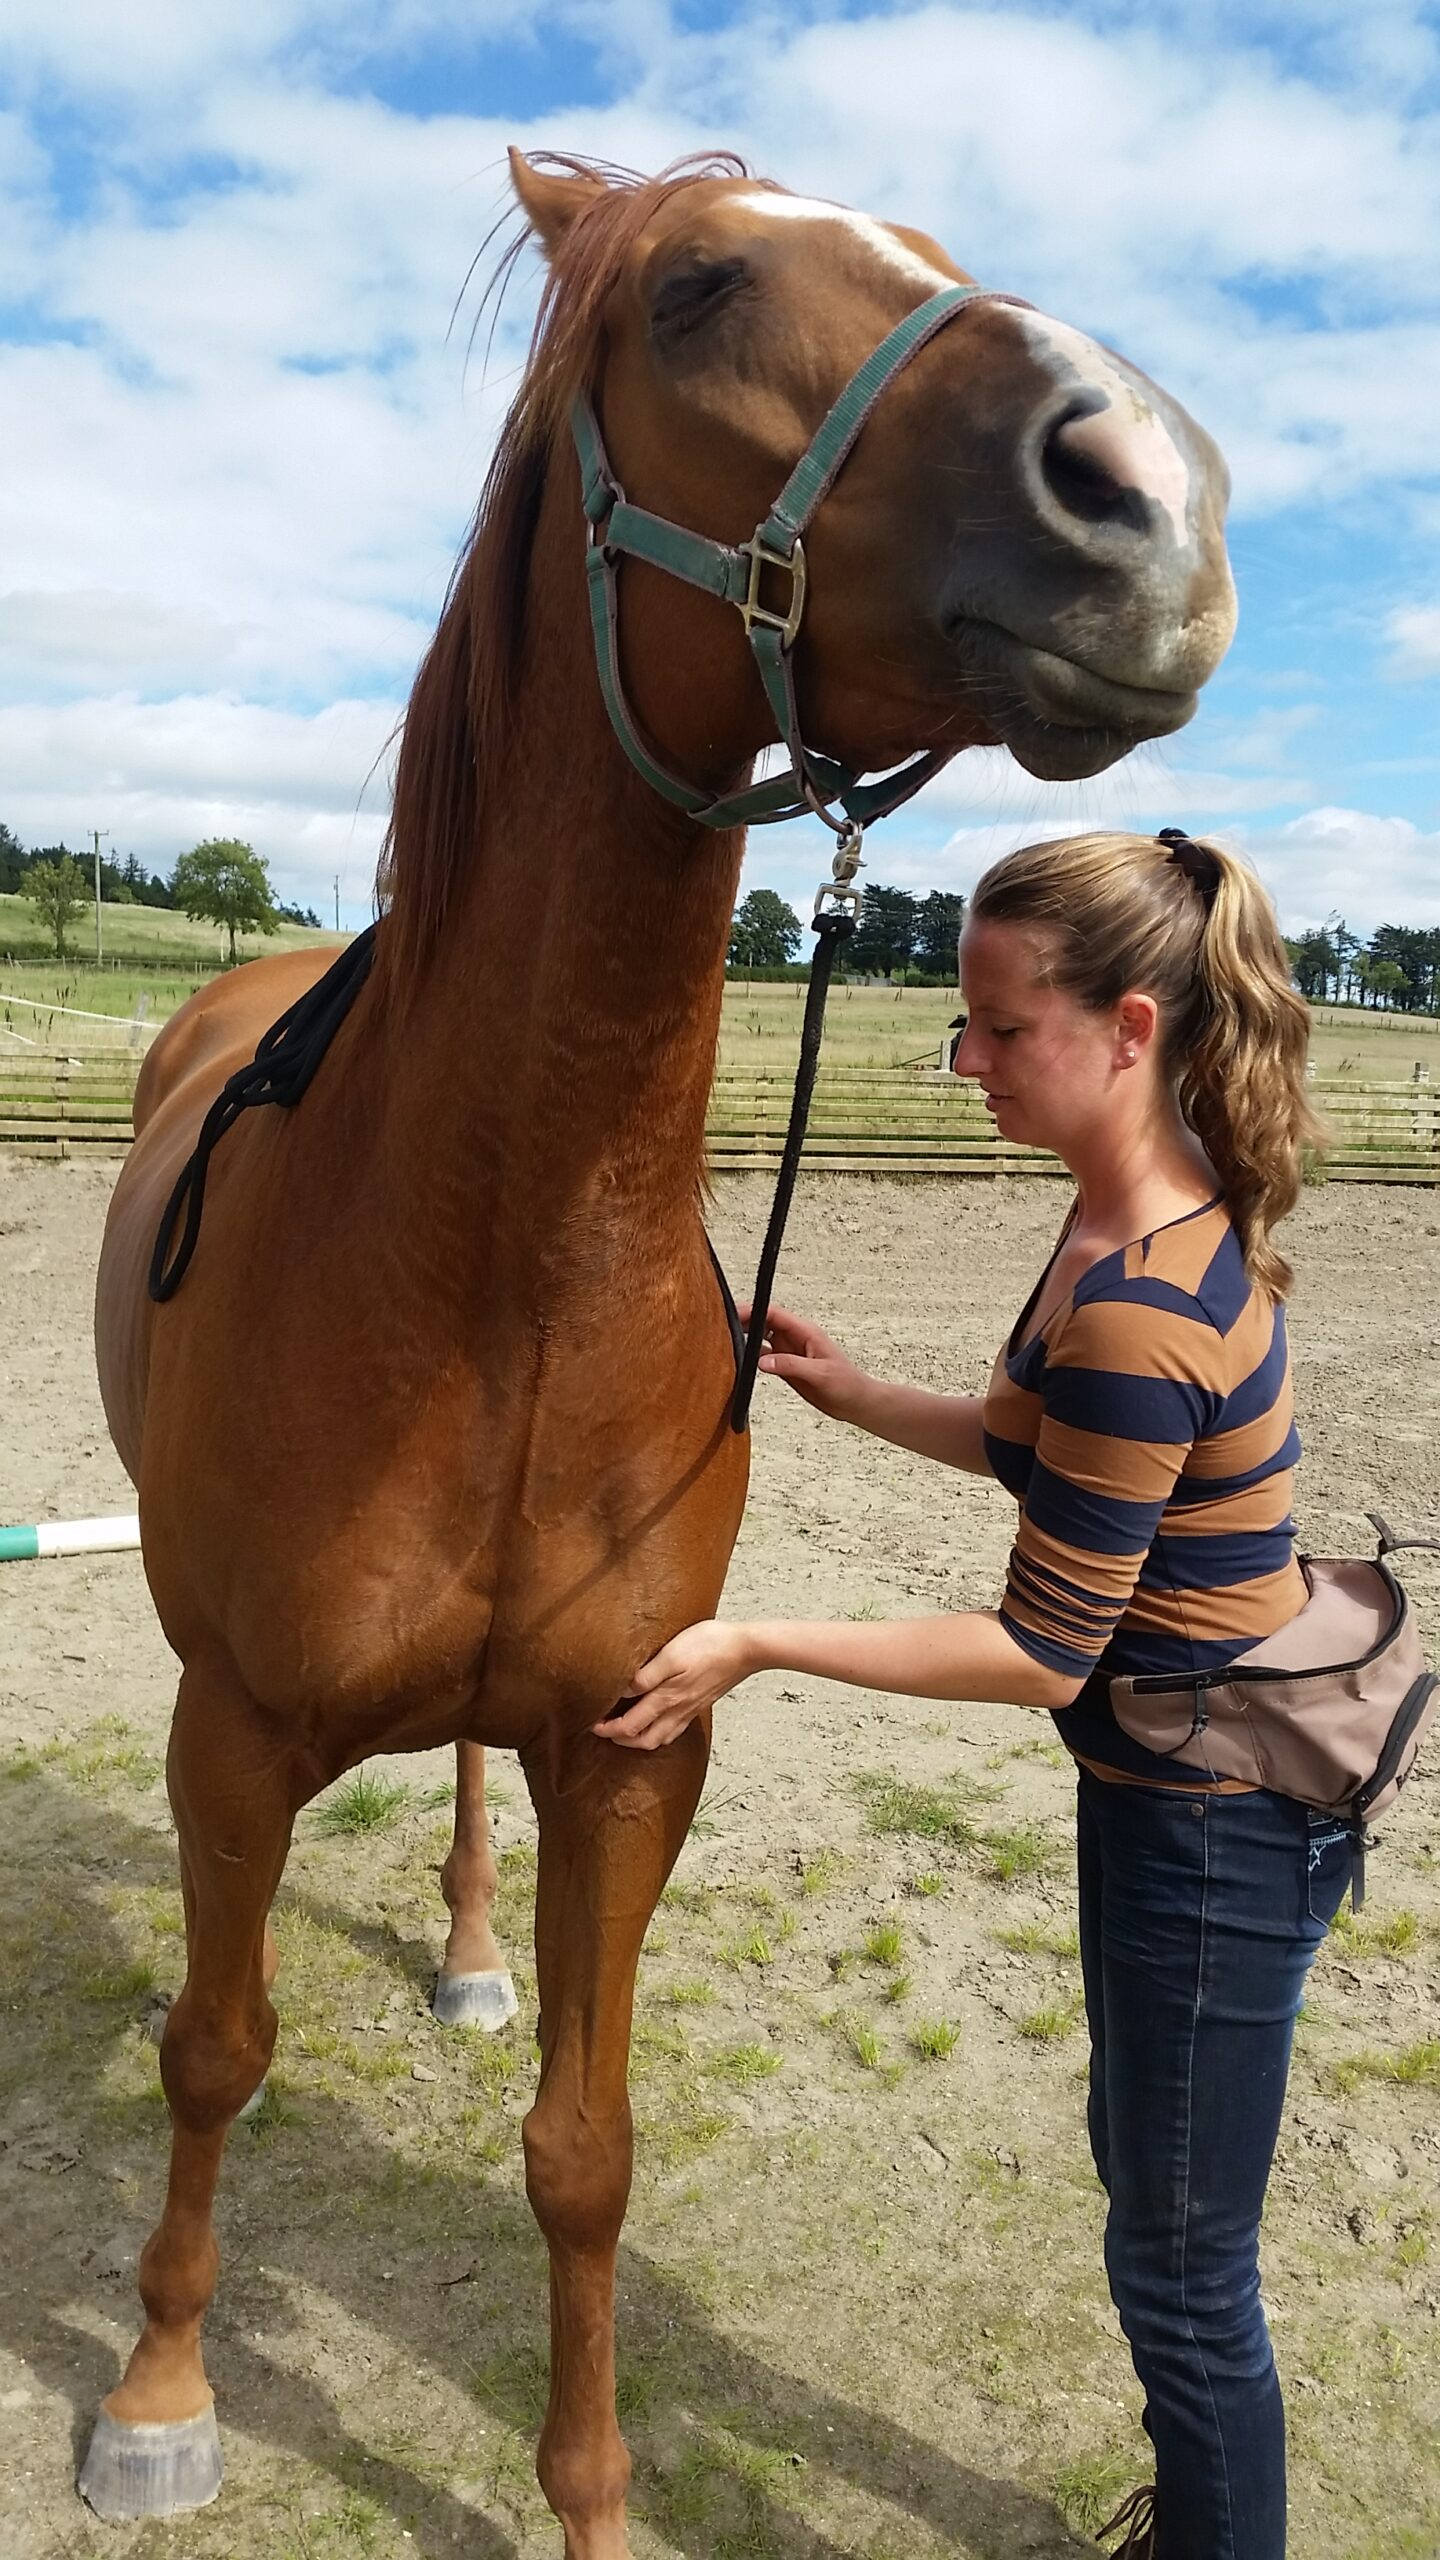 Demo: A healthy horse is a happy horse